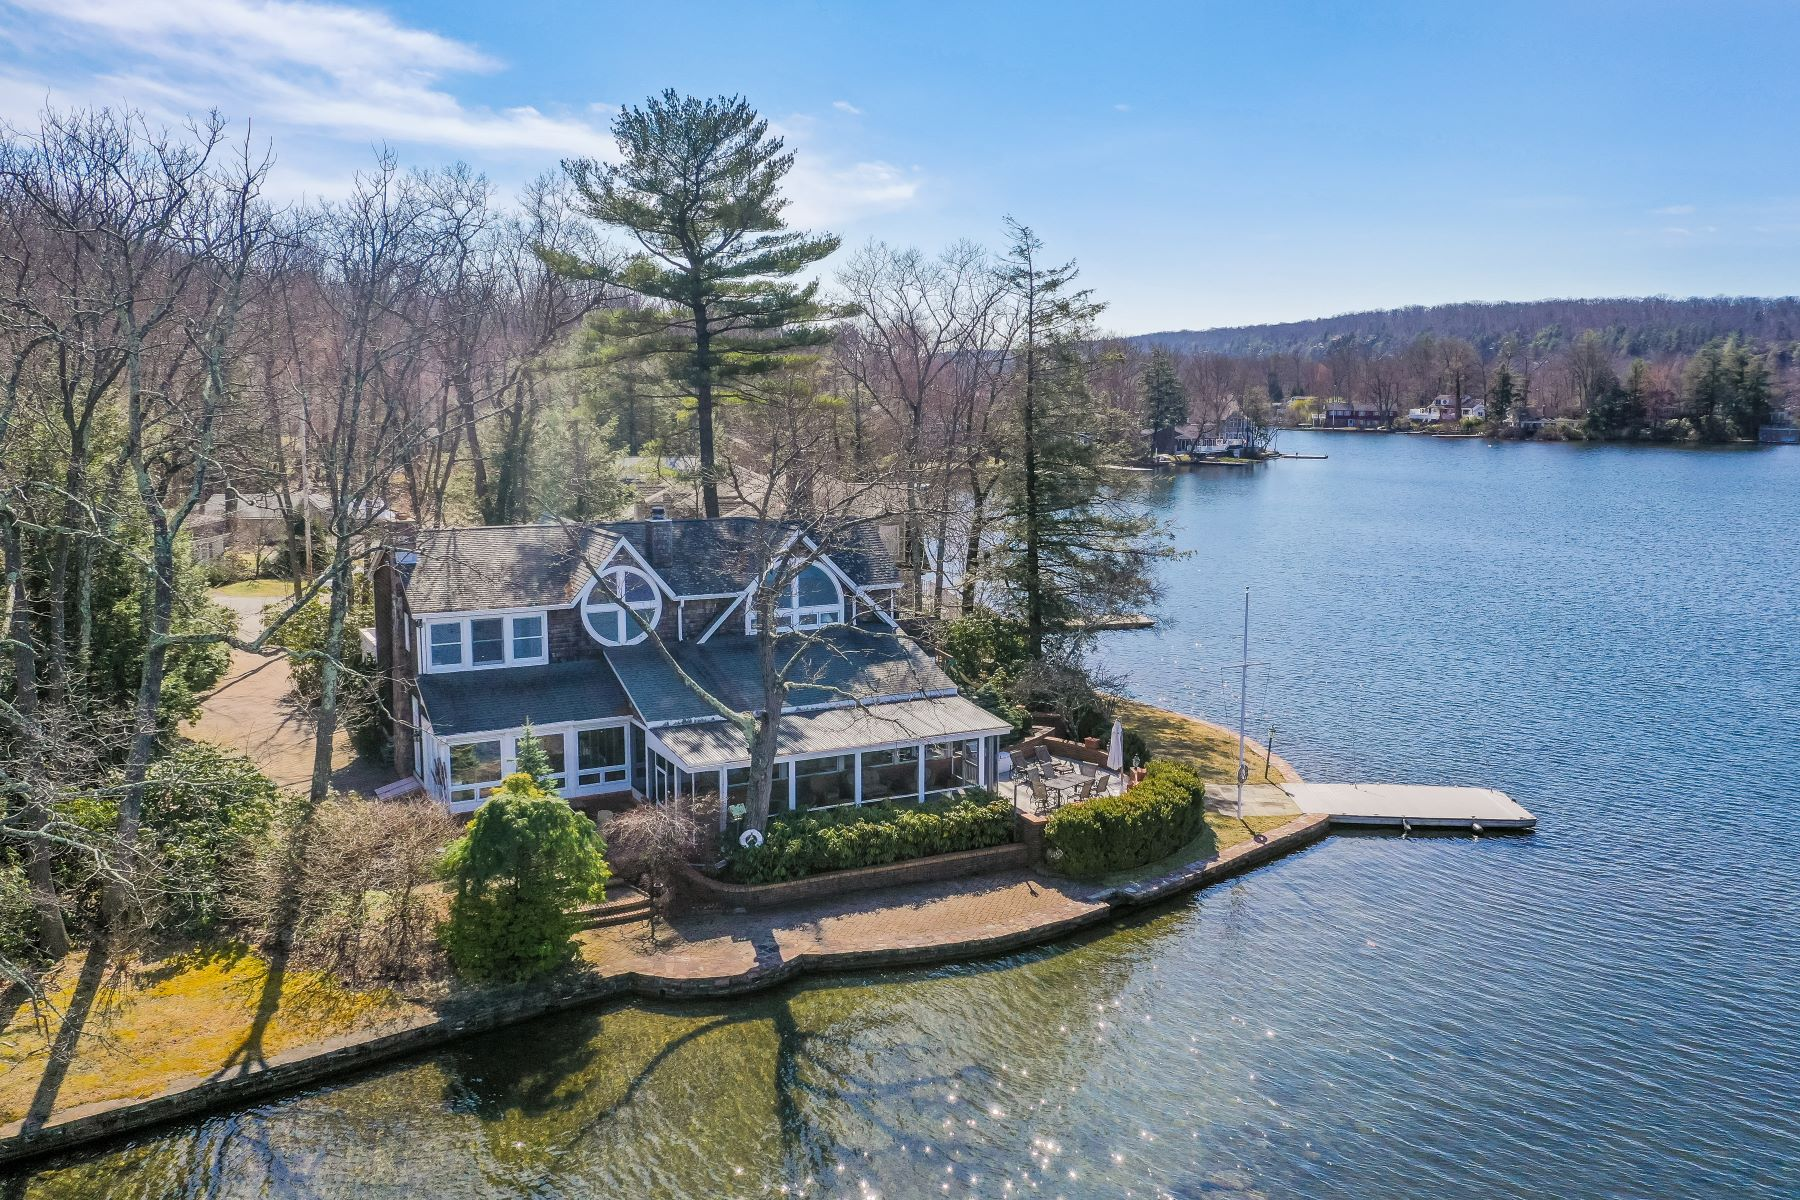 Single Family Homes for Active at Breathtaking Lake Views 128 Lake End Road Rockaway Township, New Jersey 07435 United States